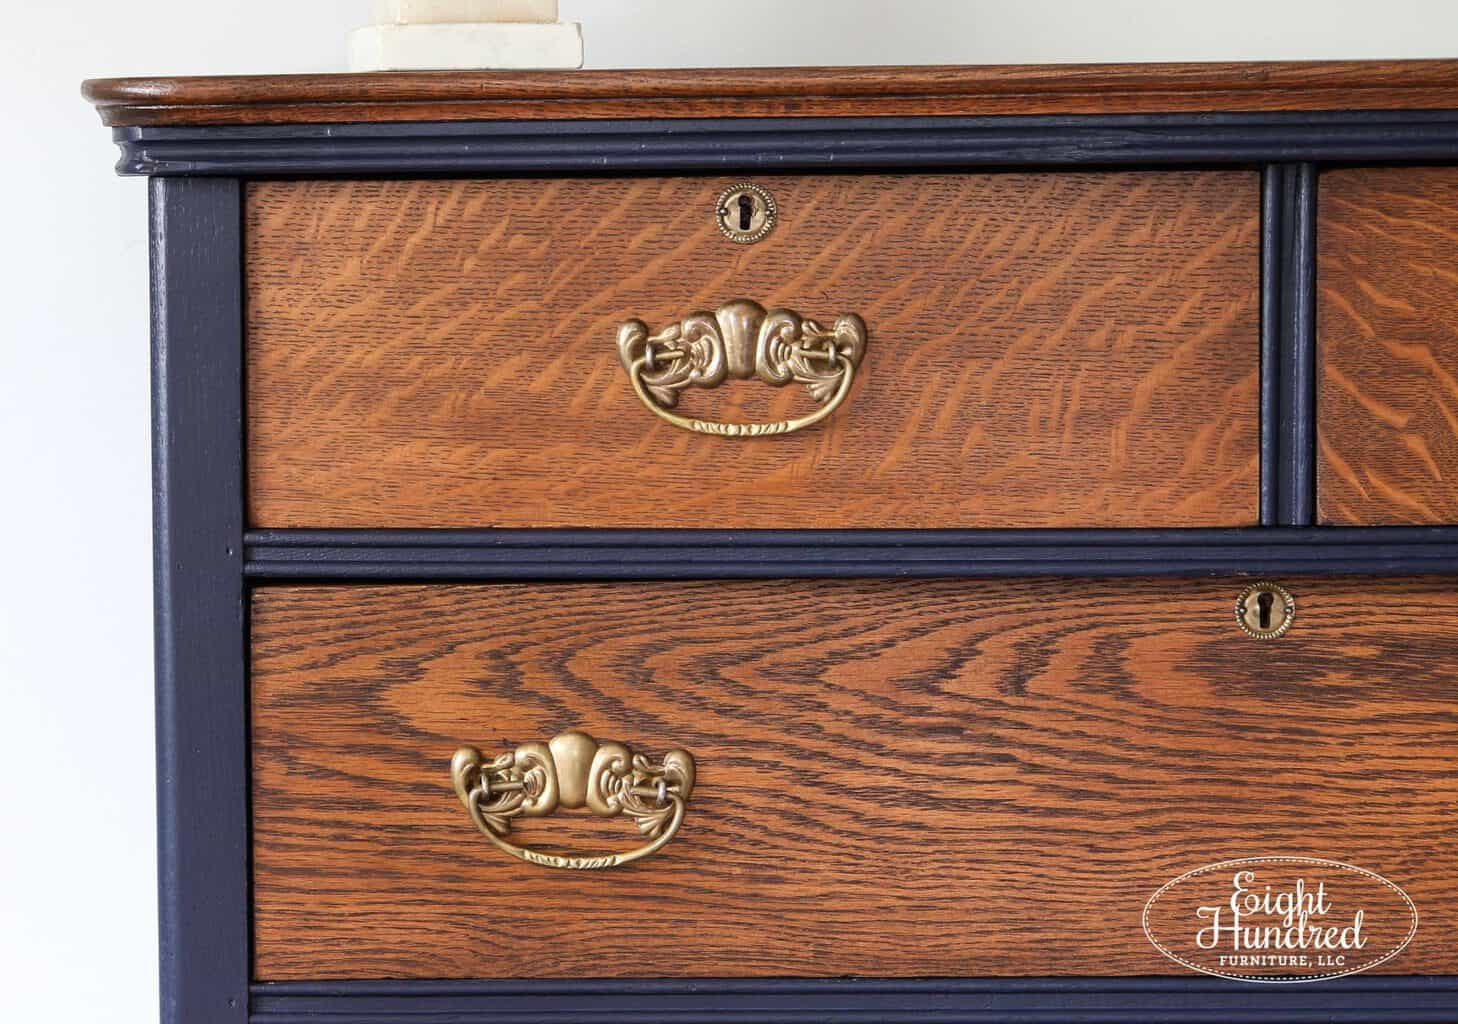 Corner shot of handles and refinished drawers in General Finishes Antique Walnut Gel Stain